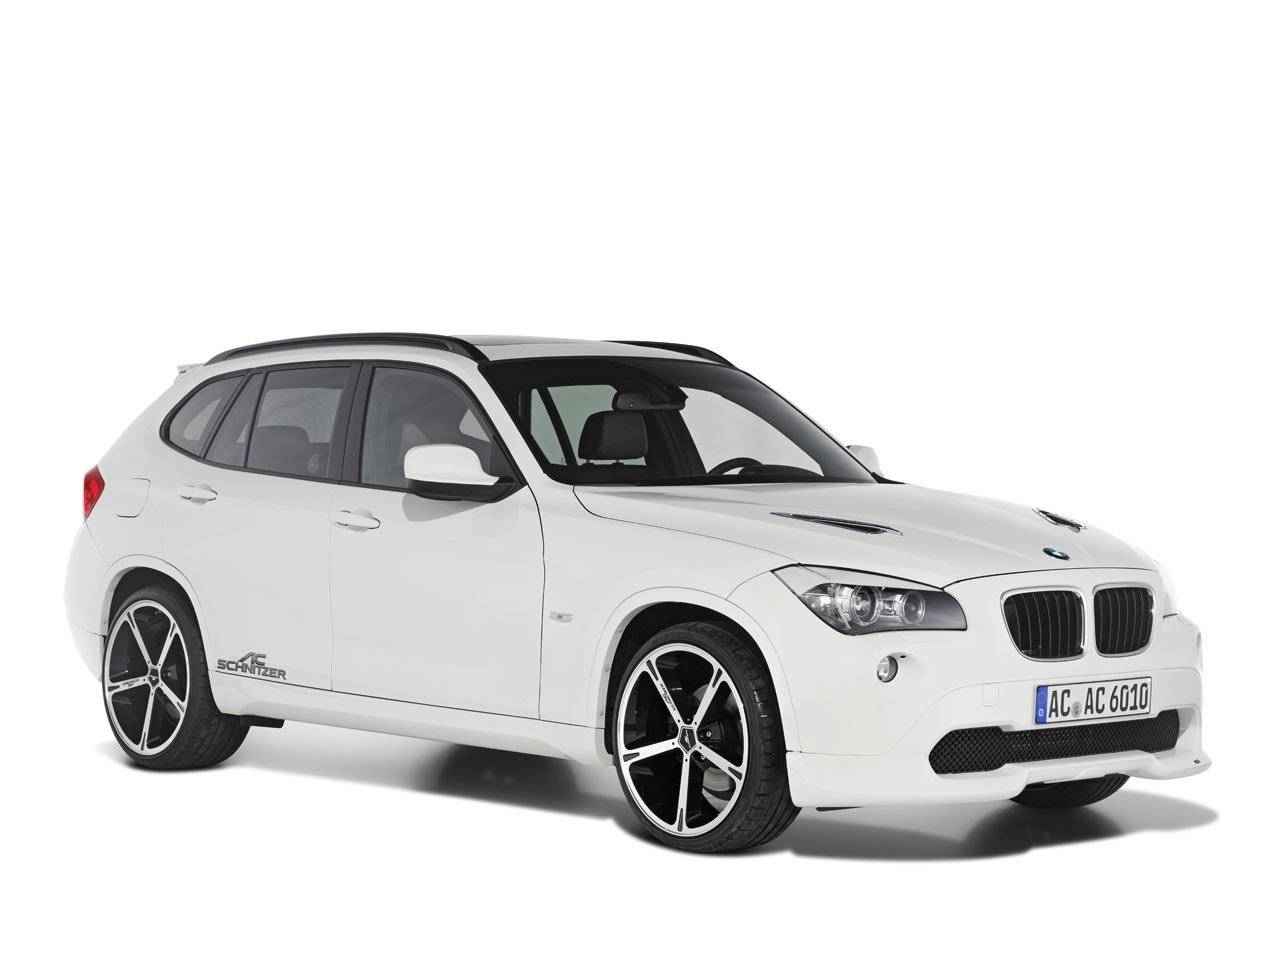 bmw x1 by ac schnitzer tuning styling. Black Bedroom Furniture Sets. Home Design Ideas